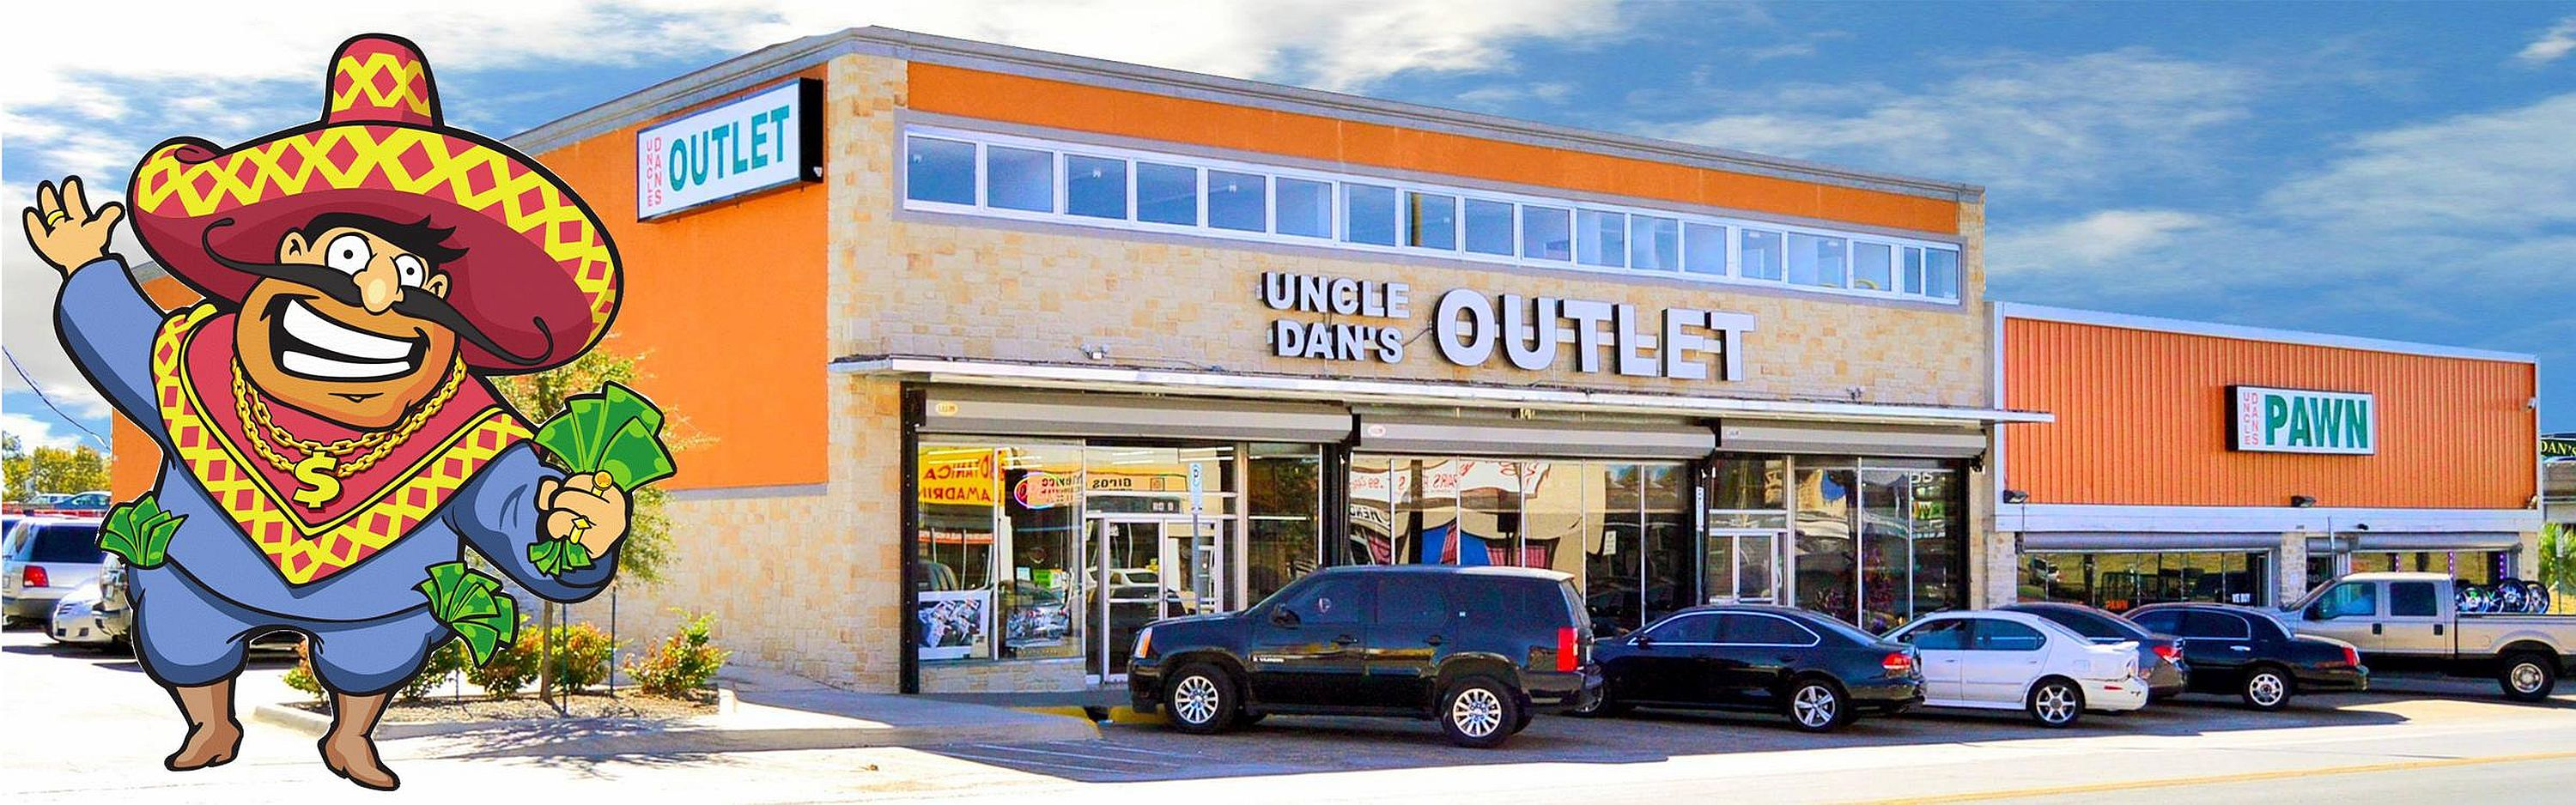 Uncle Dan's Outlet storefront at I-30 & E. Grand Ave., Dallas TX